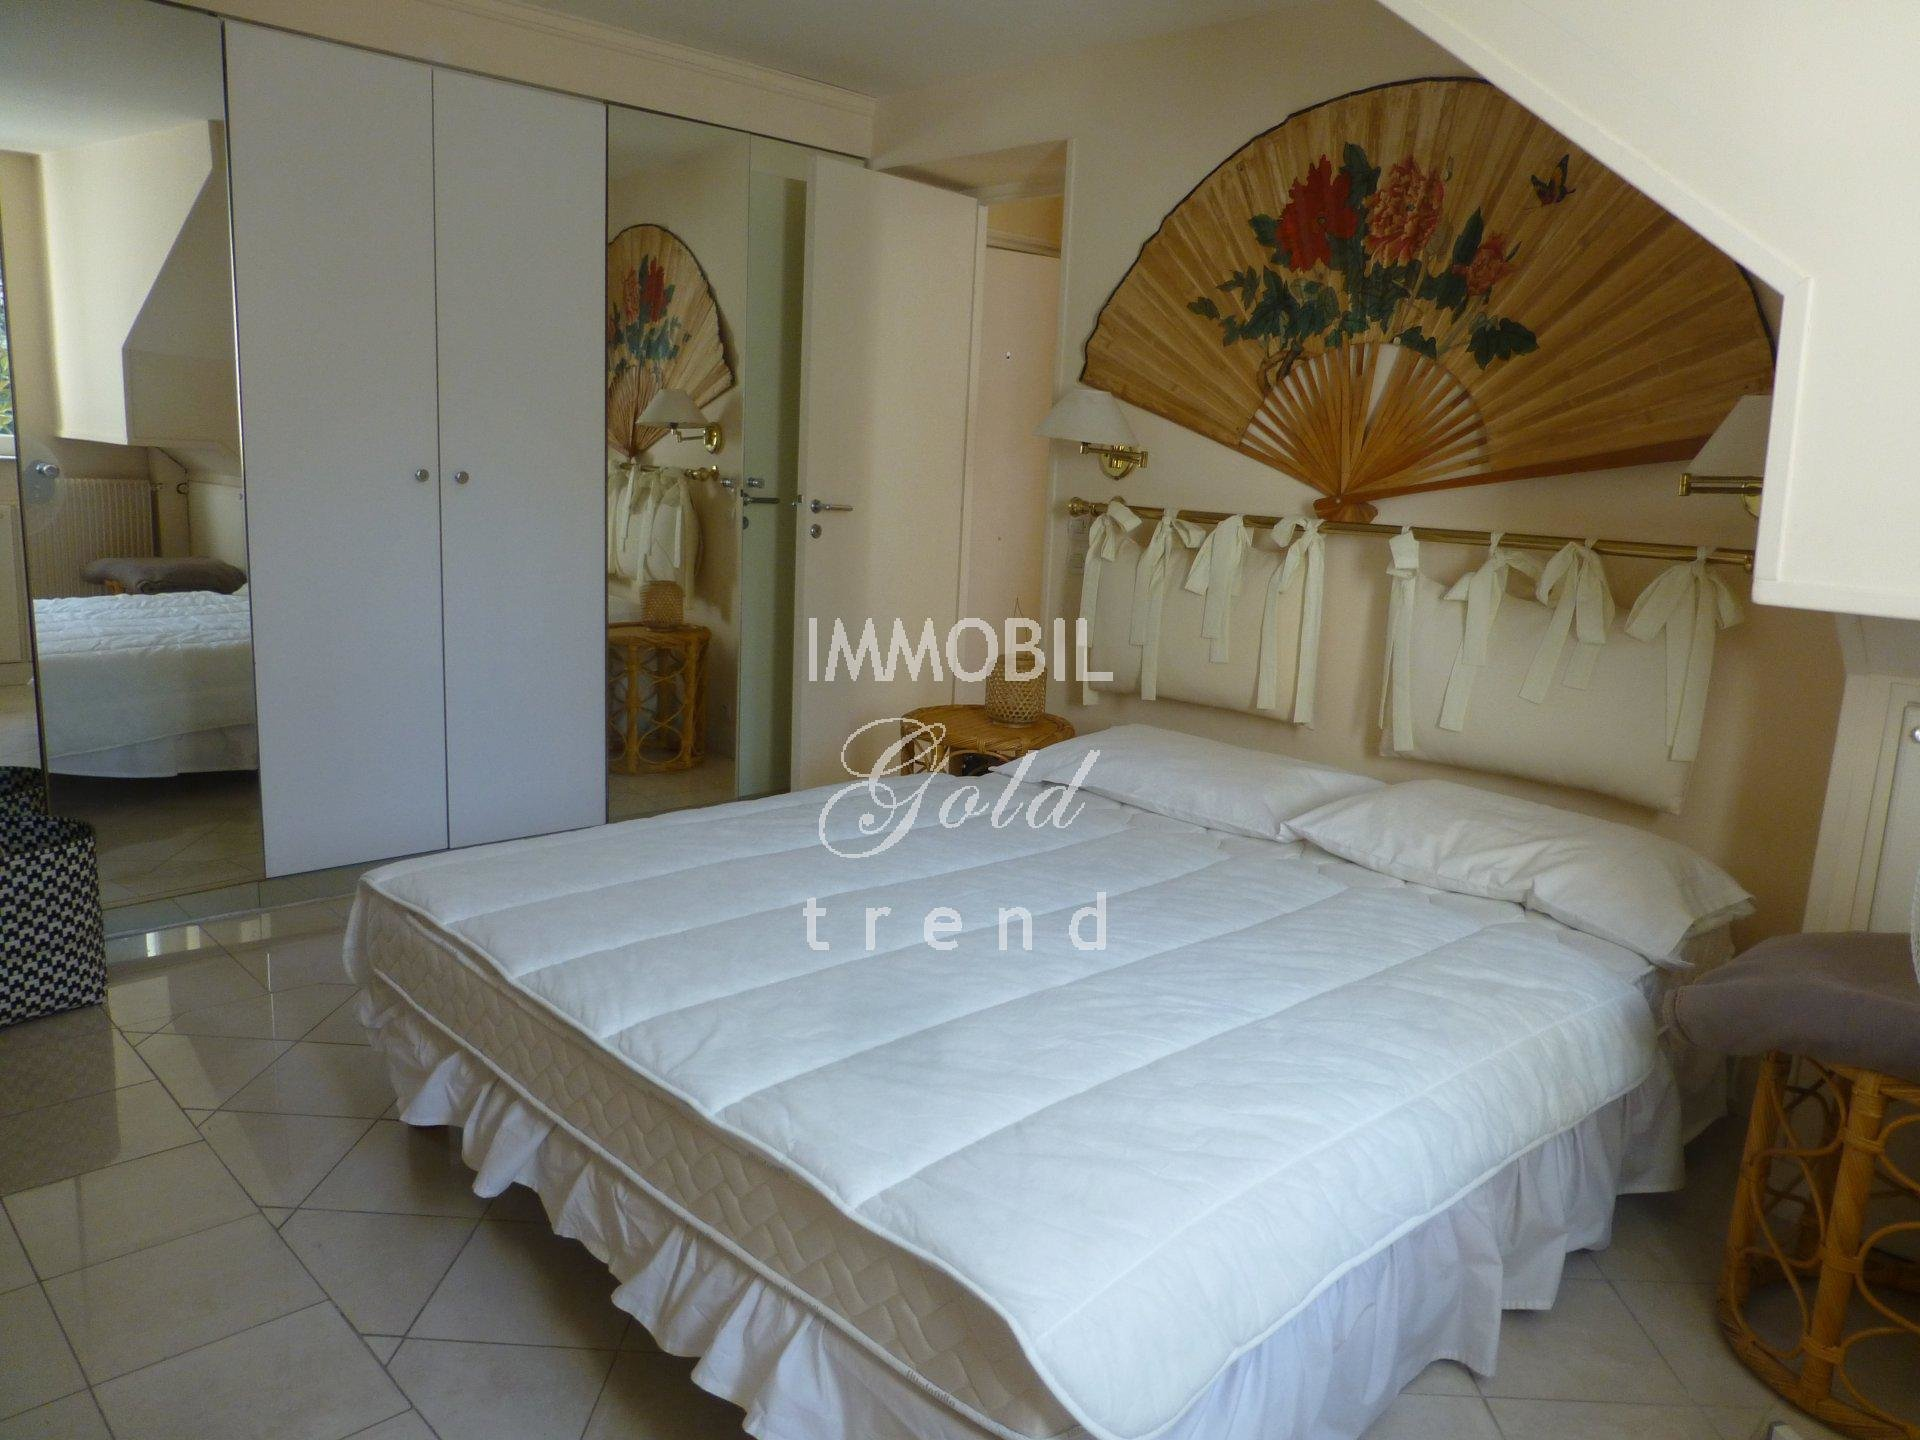 Real estate Roquebrune Cap Martin - For rental, two bedroom apartment situated in a prestigious building with park and swimming pool